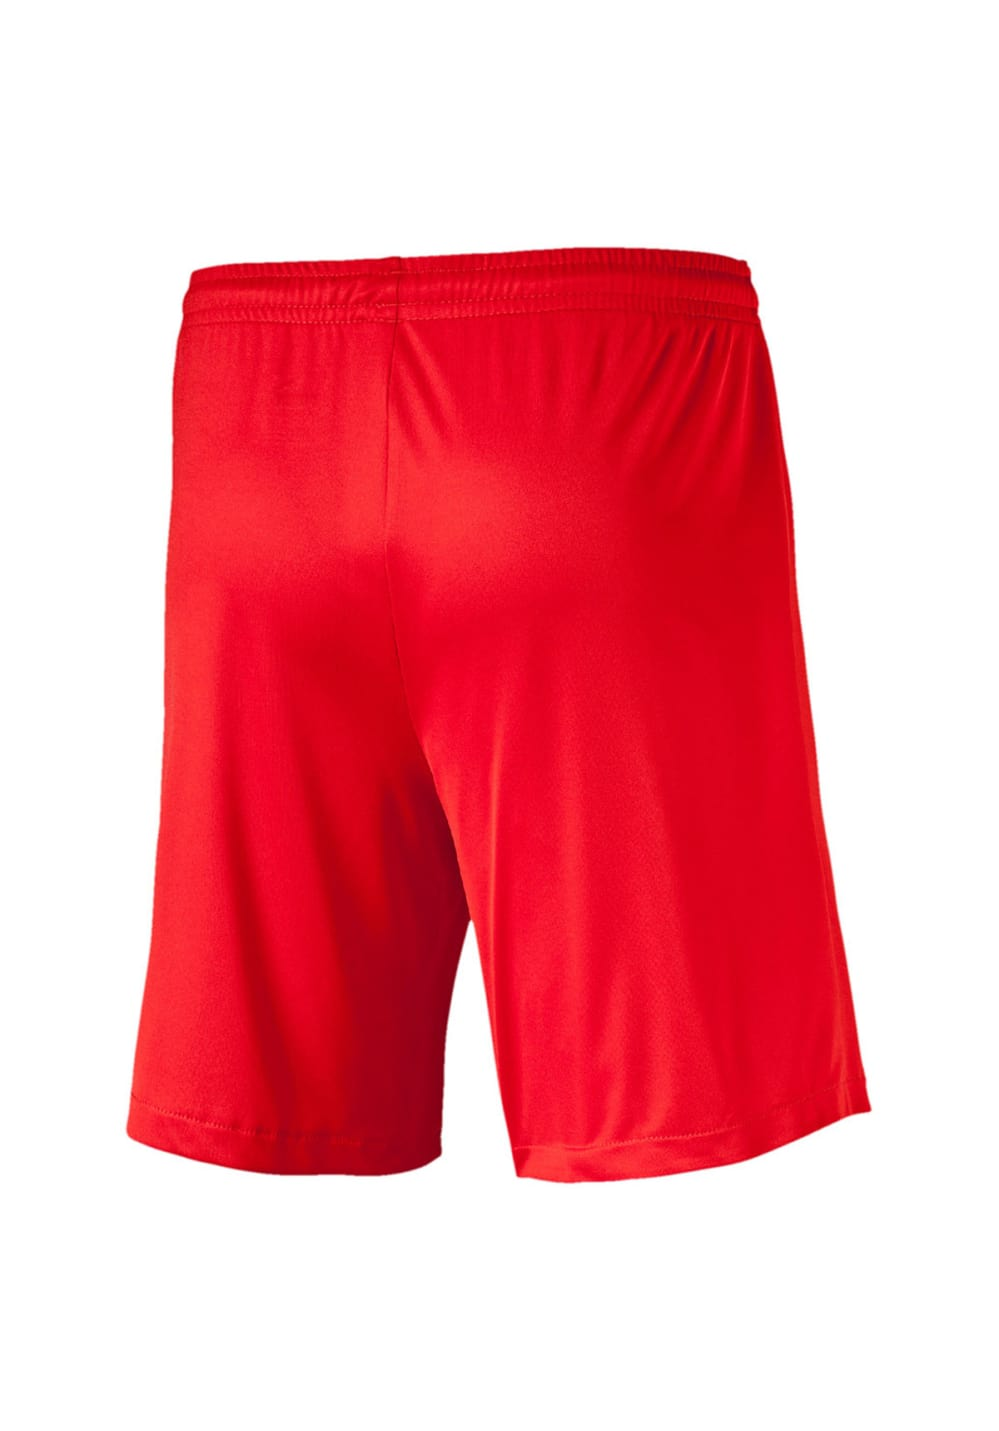 62d2e3c8181e Puma Velize Shorts W.out Inner Slip - Fitness trousers - Red